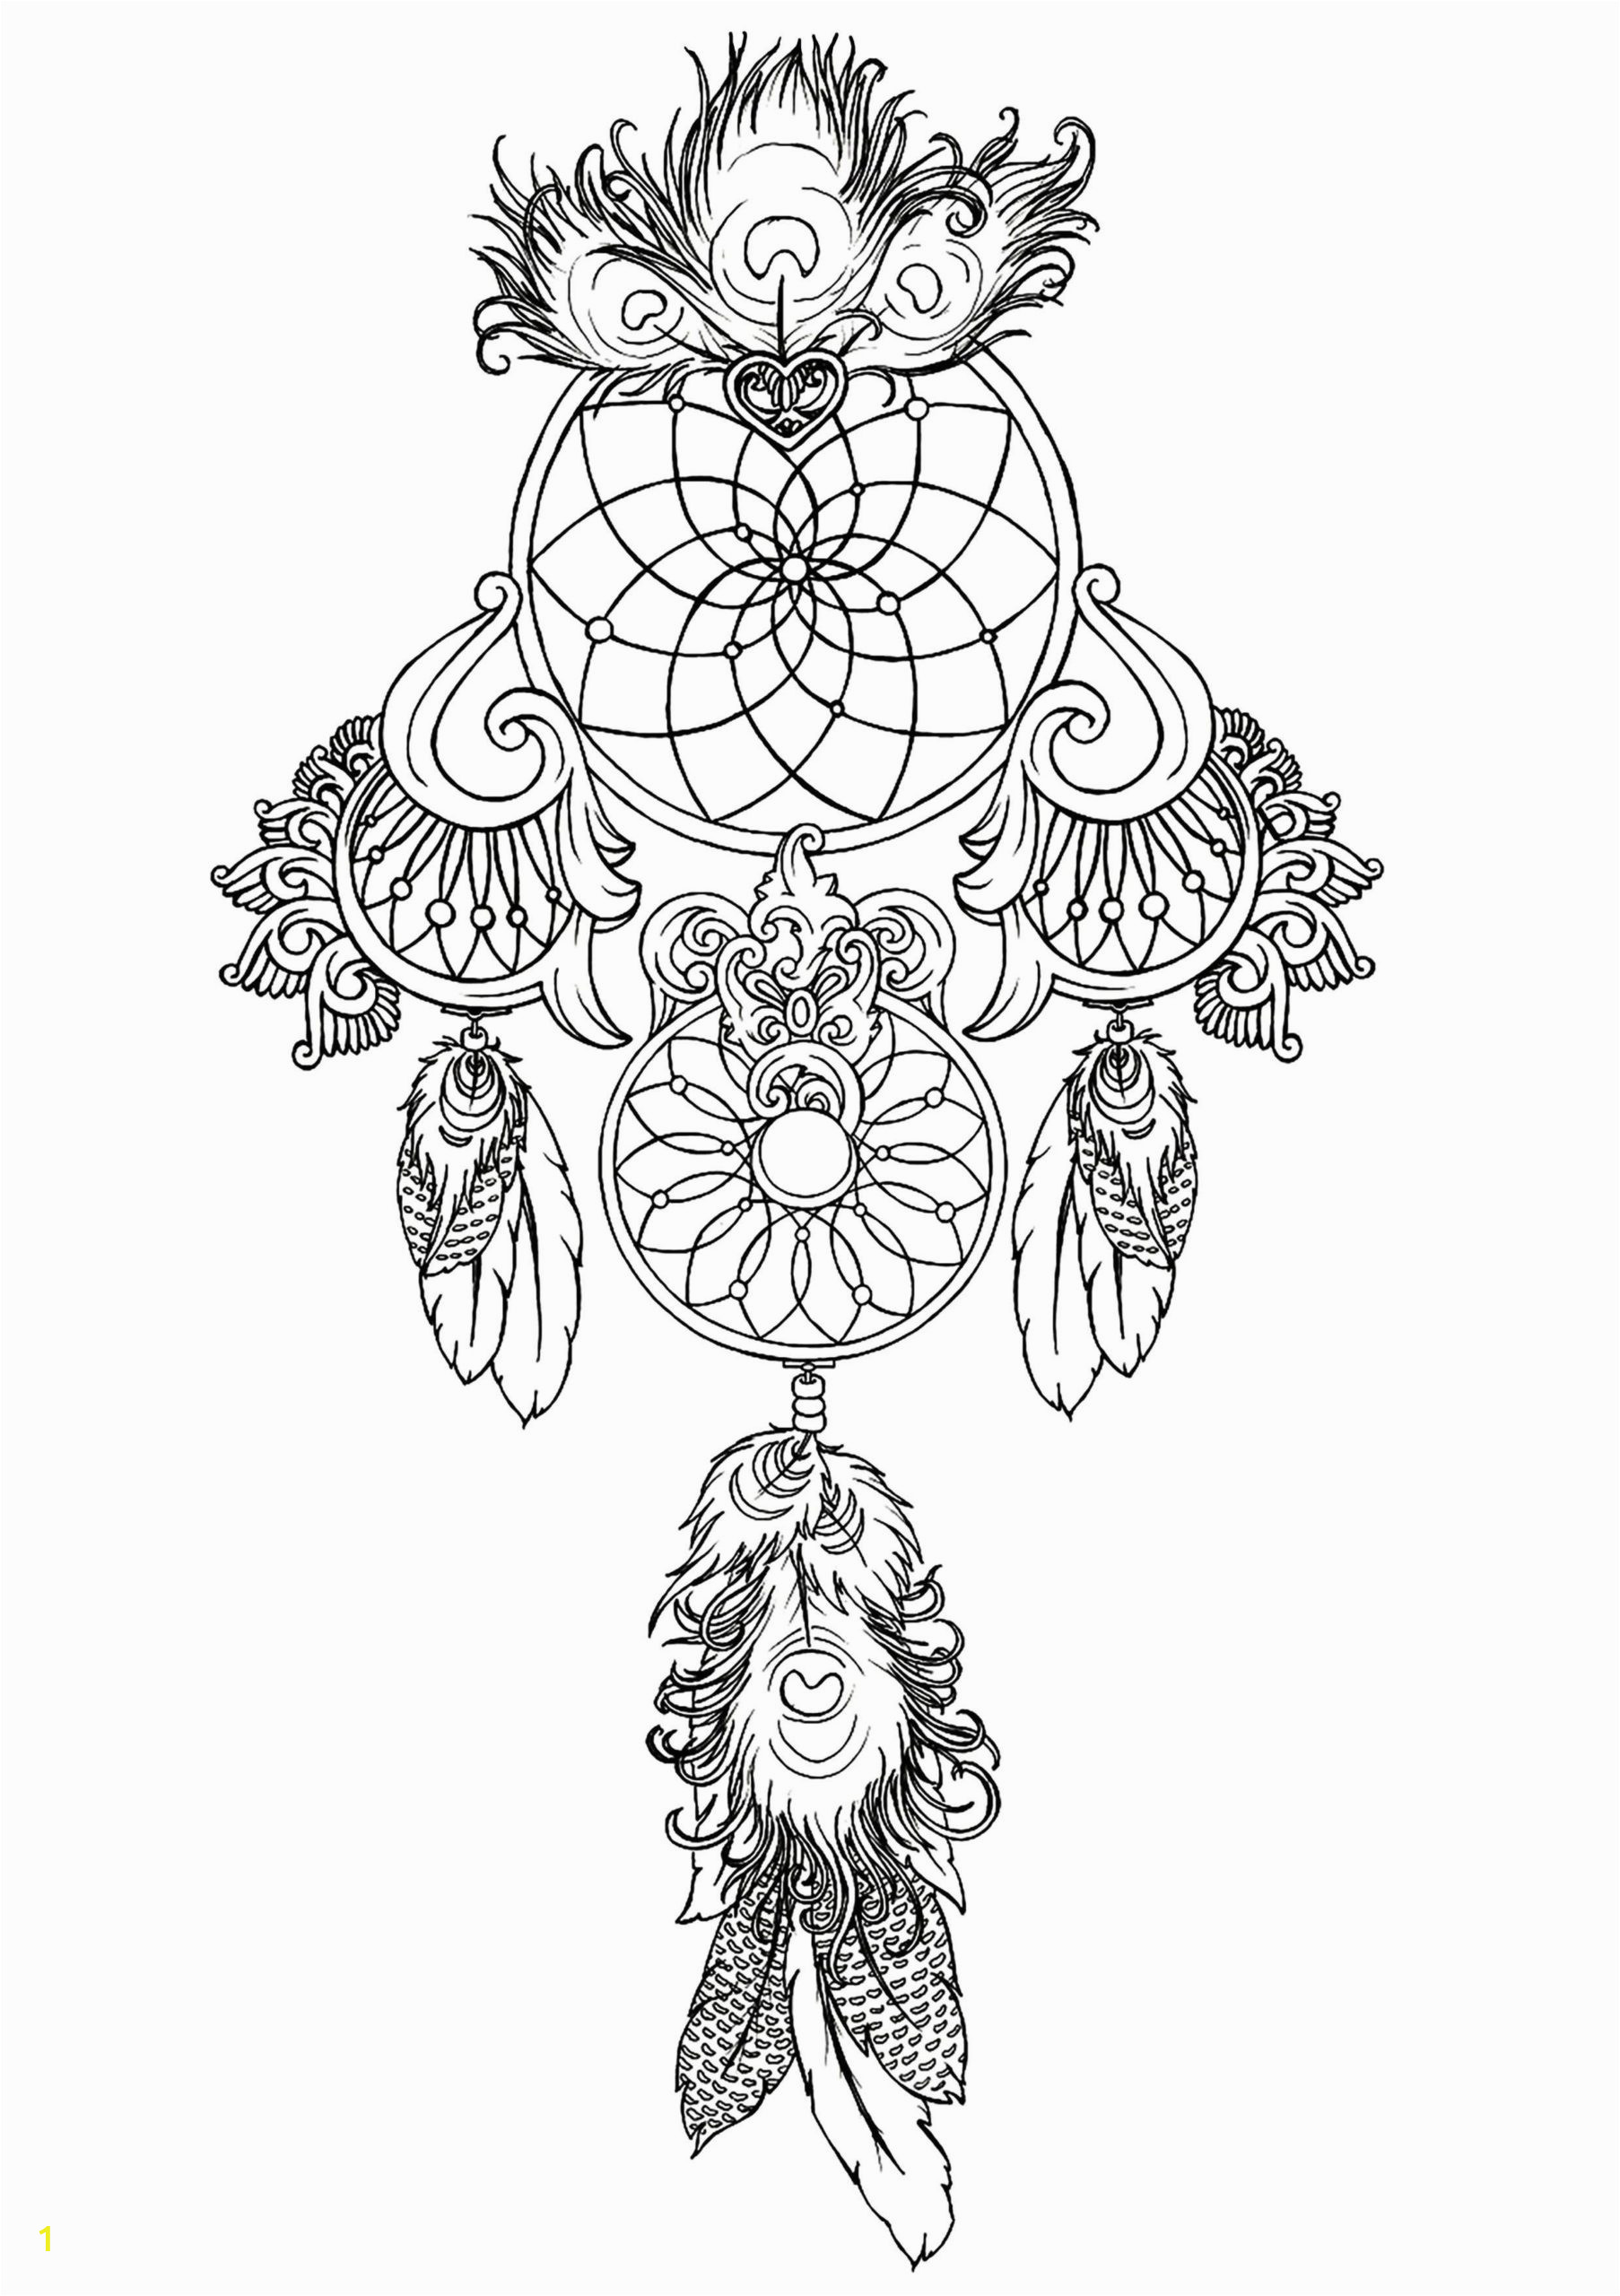 mandala coloring sheets print childrens pages grateful book barney elephant colouring for adults advent pineapple page soccer cursing snowman patterns fantasy holiday preschool arts